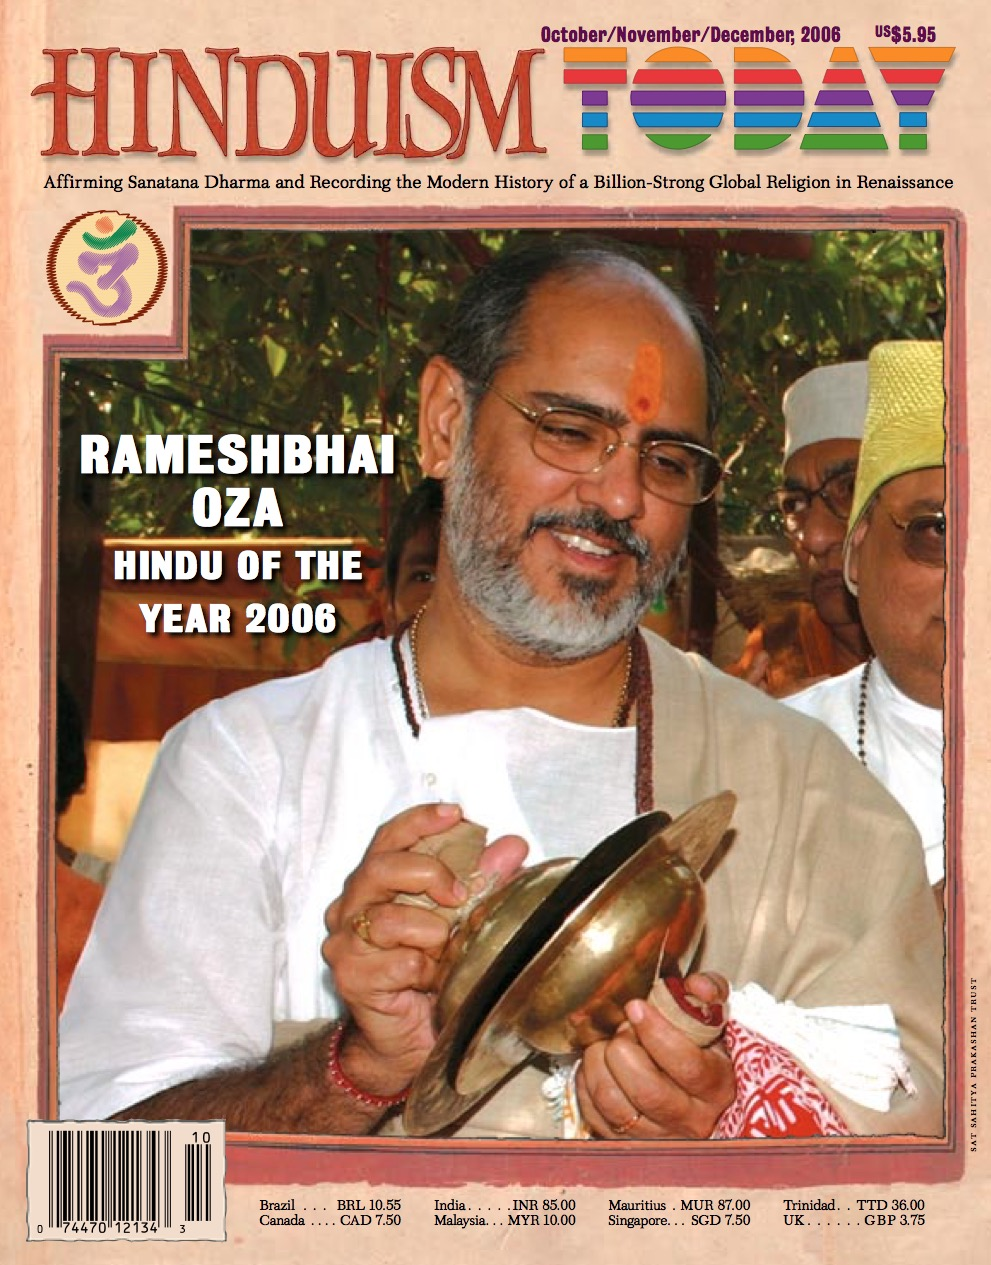 Hinduism Today Oct-Nov-Dec 2006